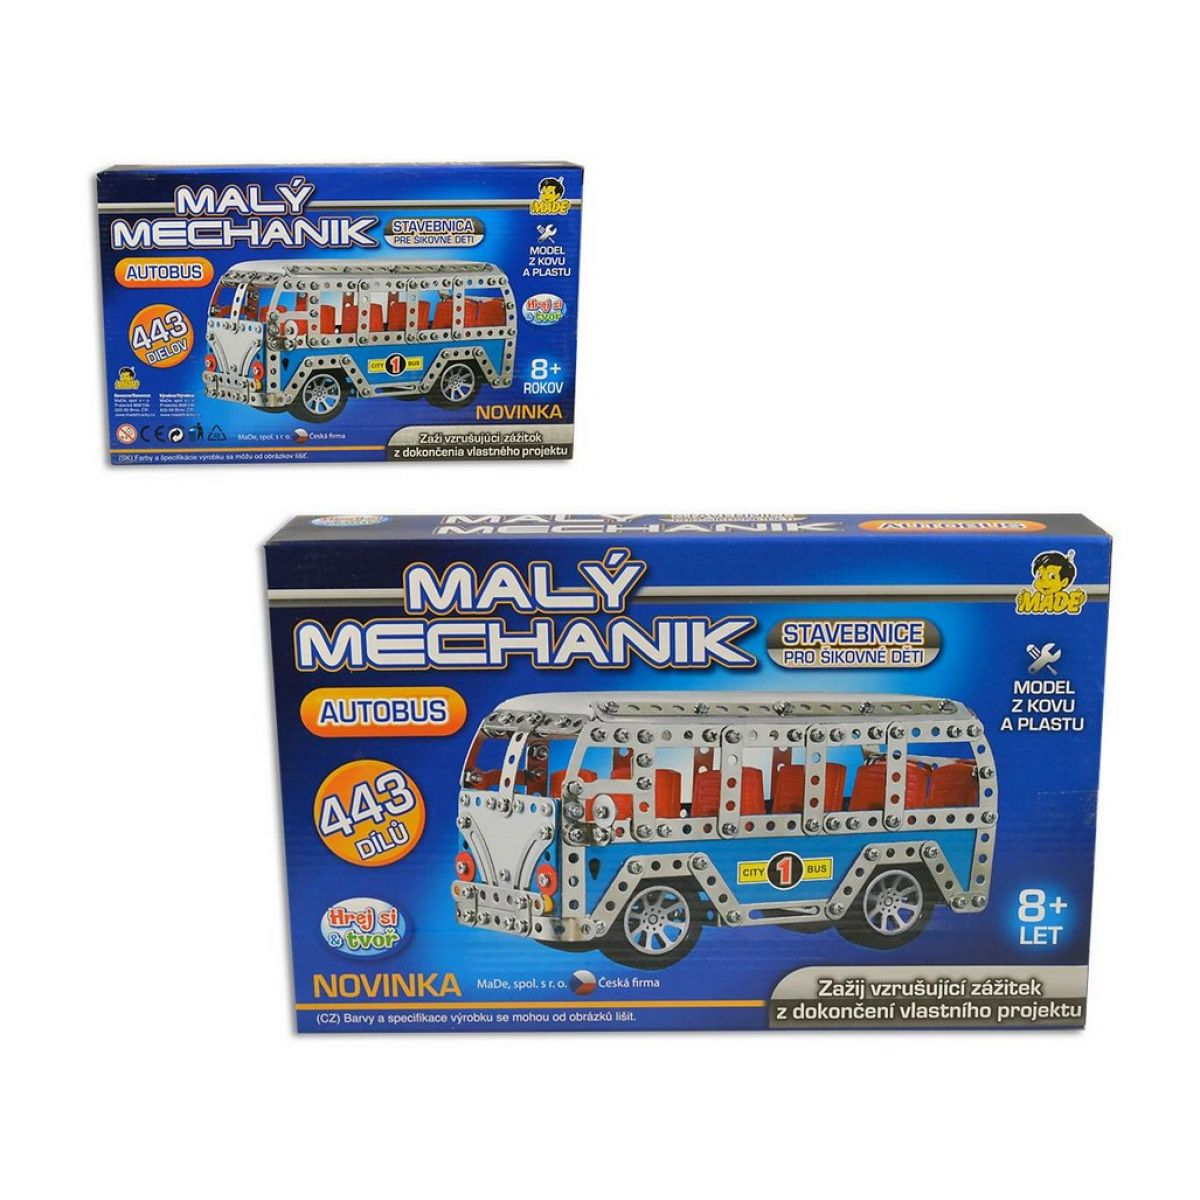 Made Malý mechanik Autobus